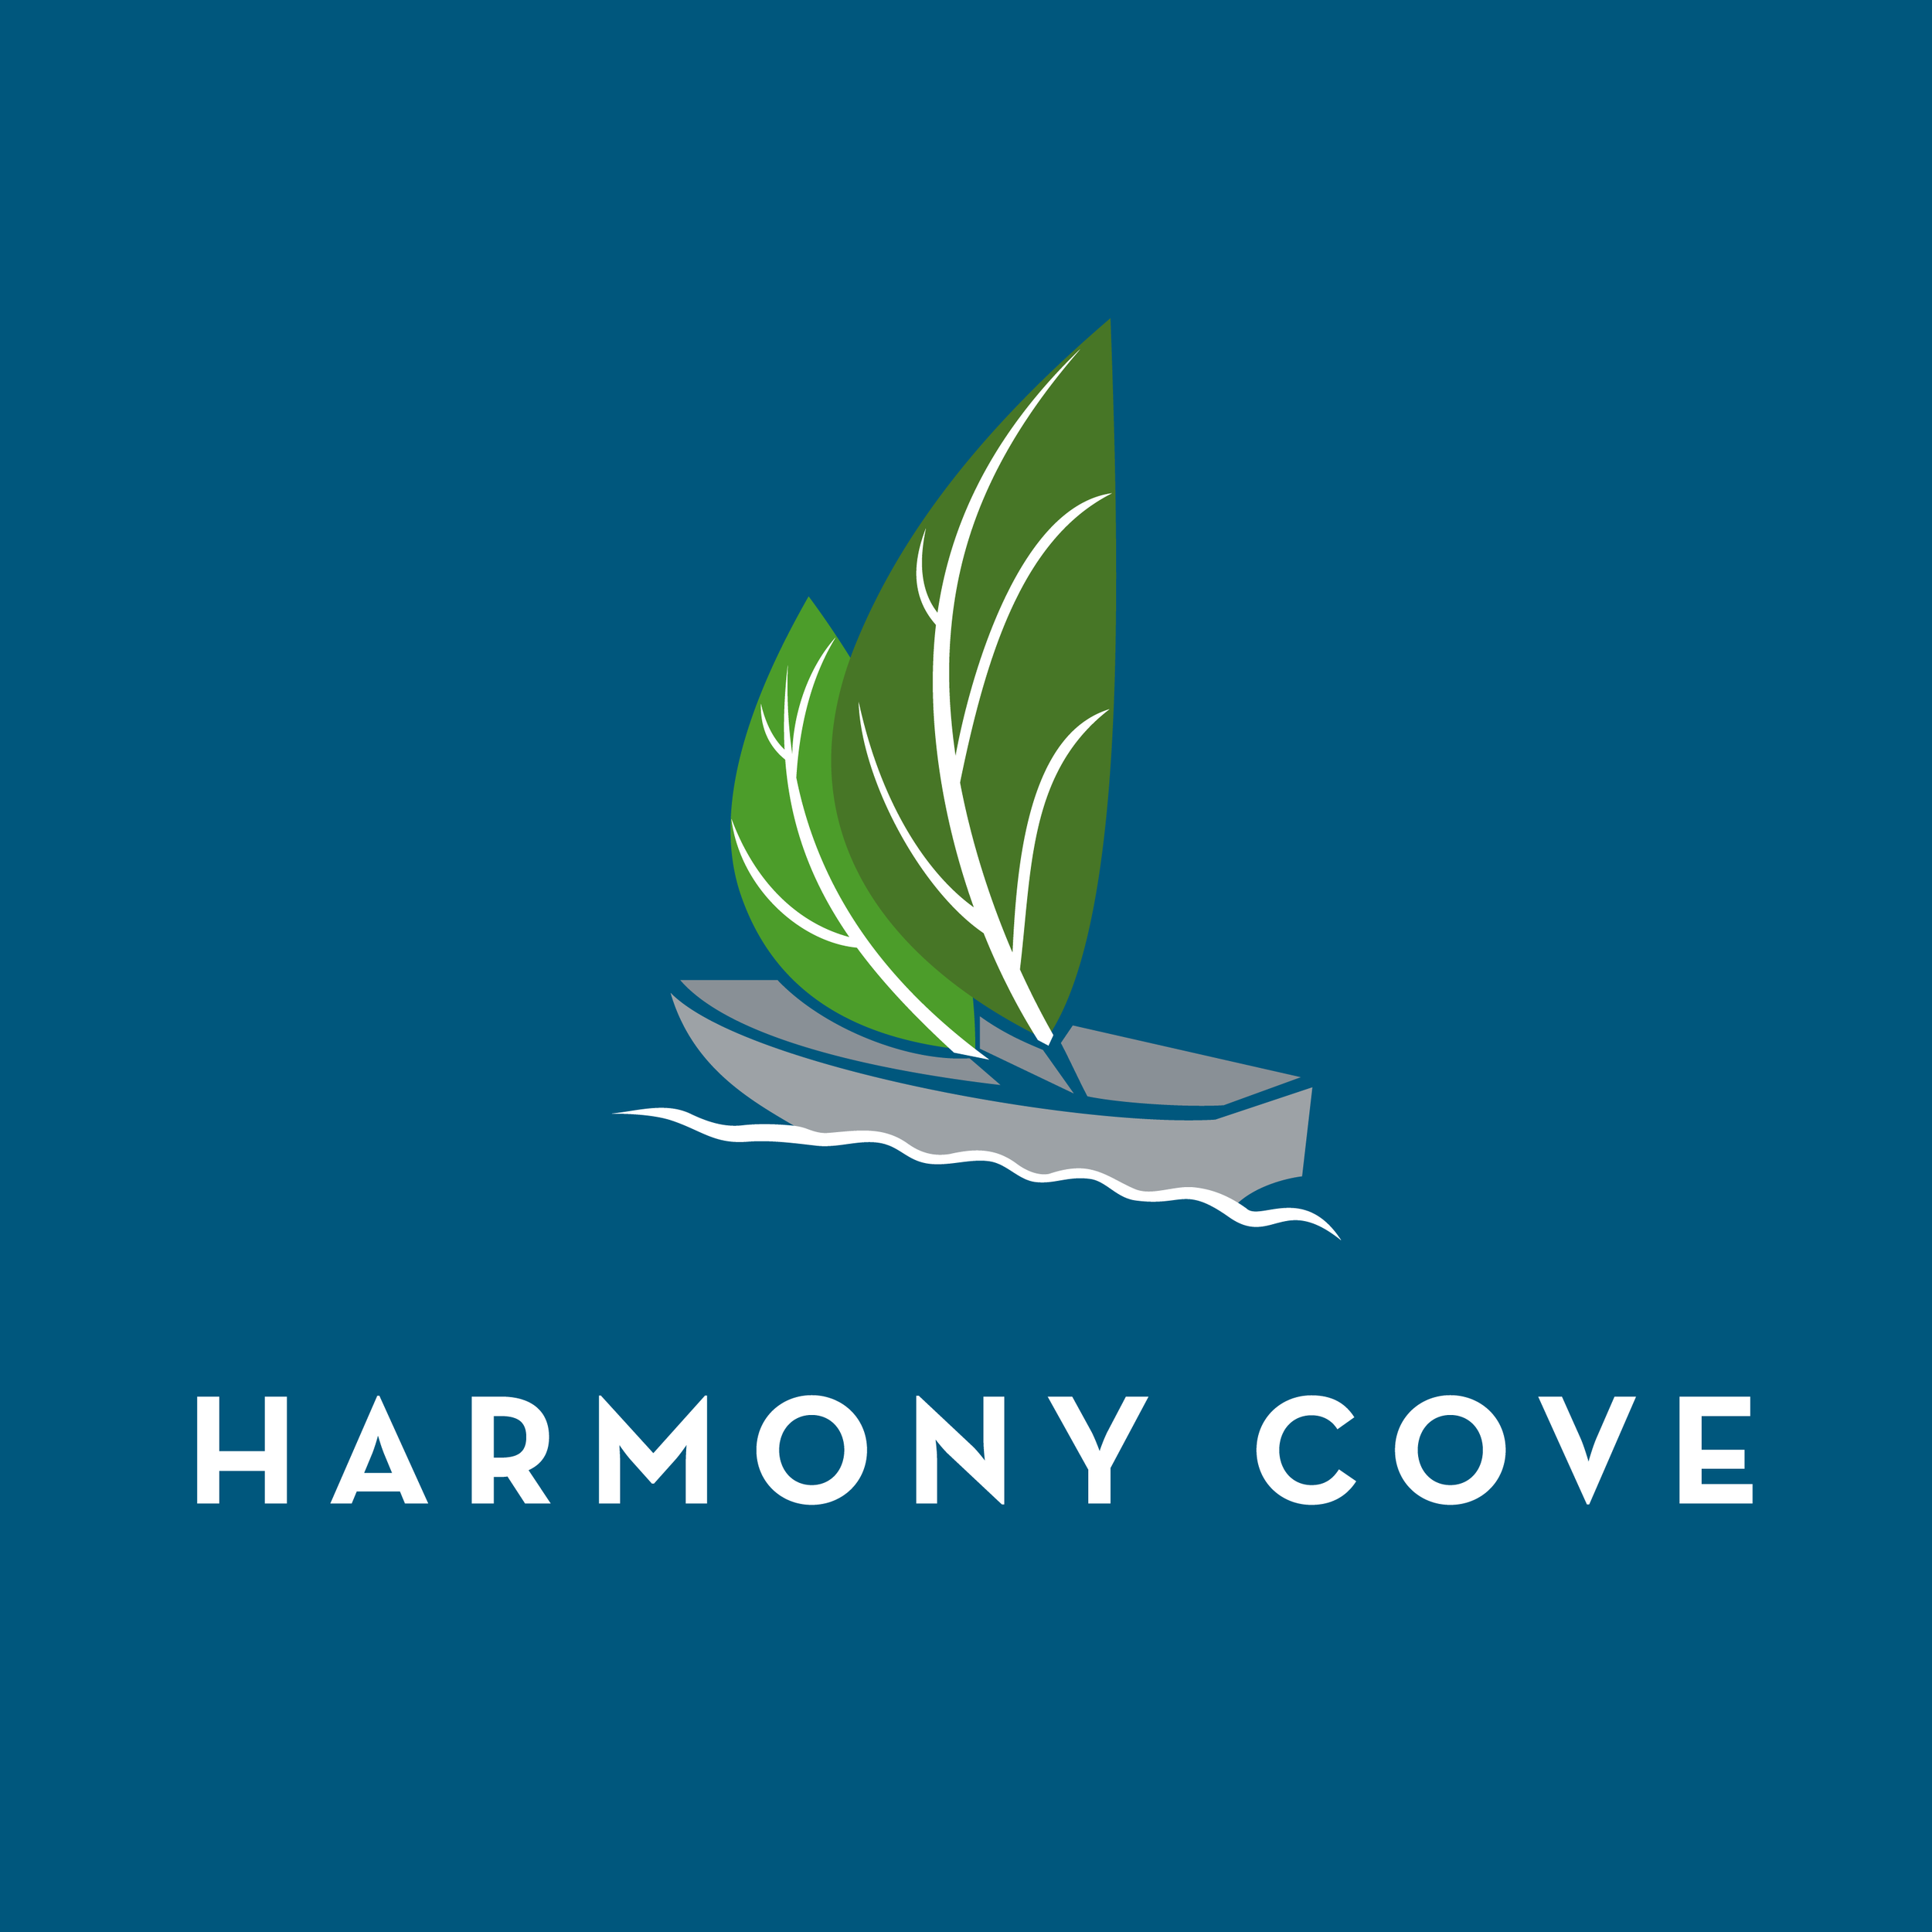 harmony_cove_proposed.png